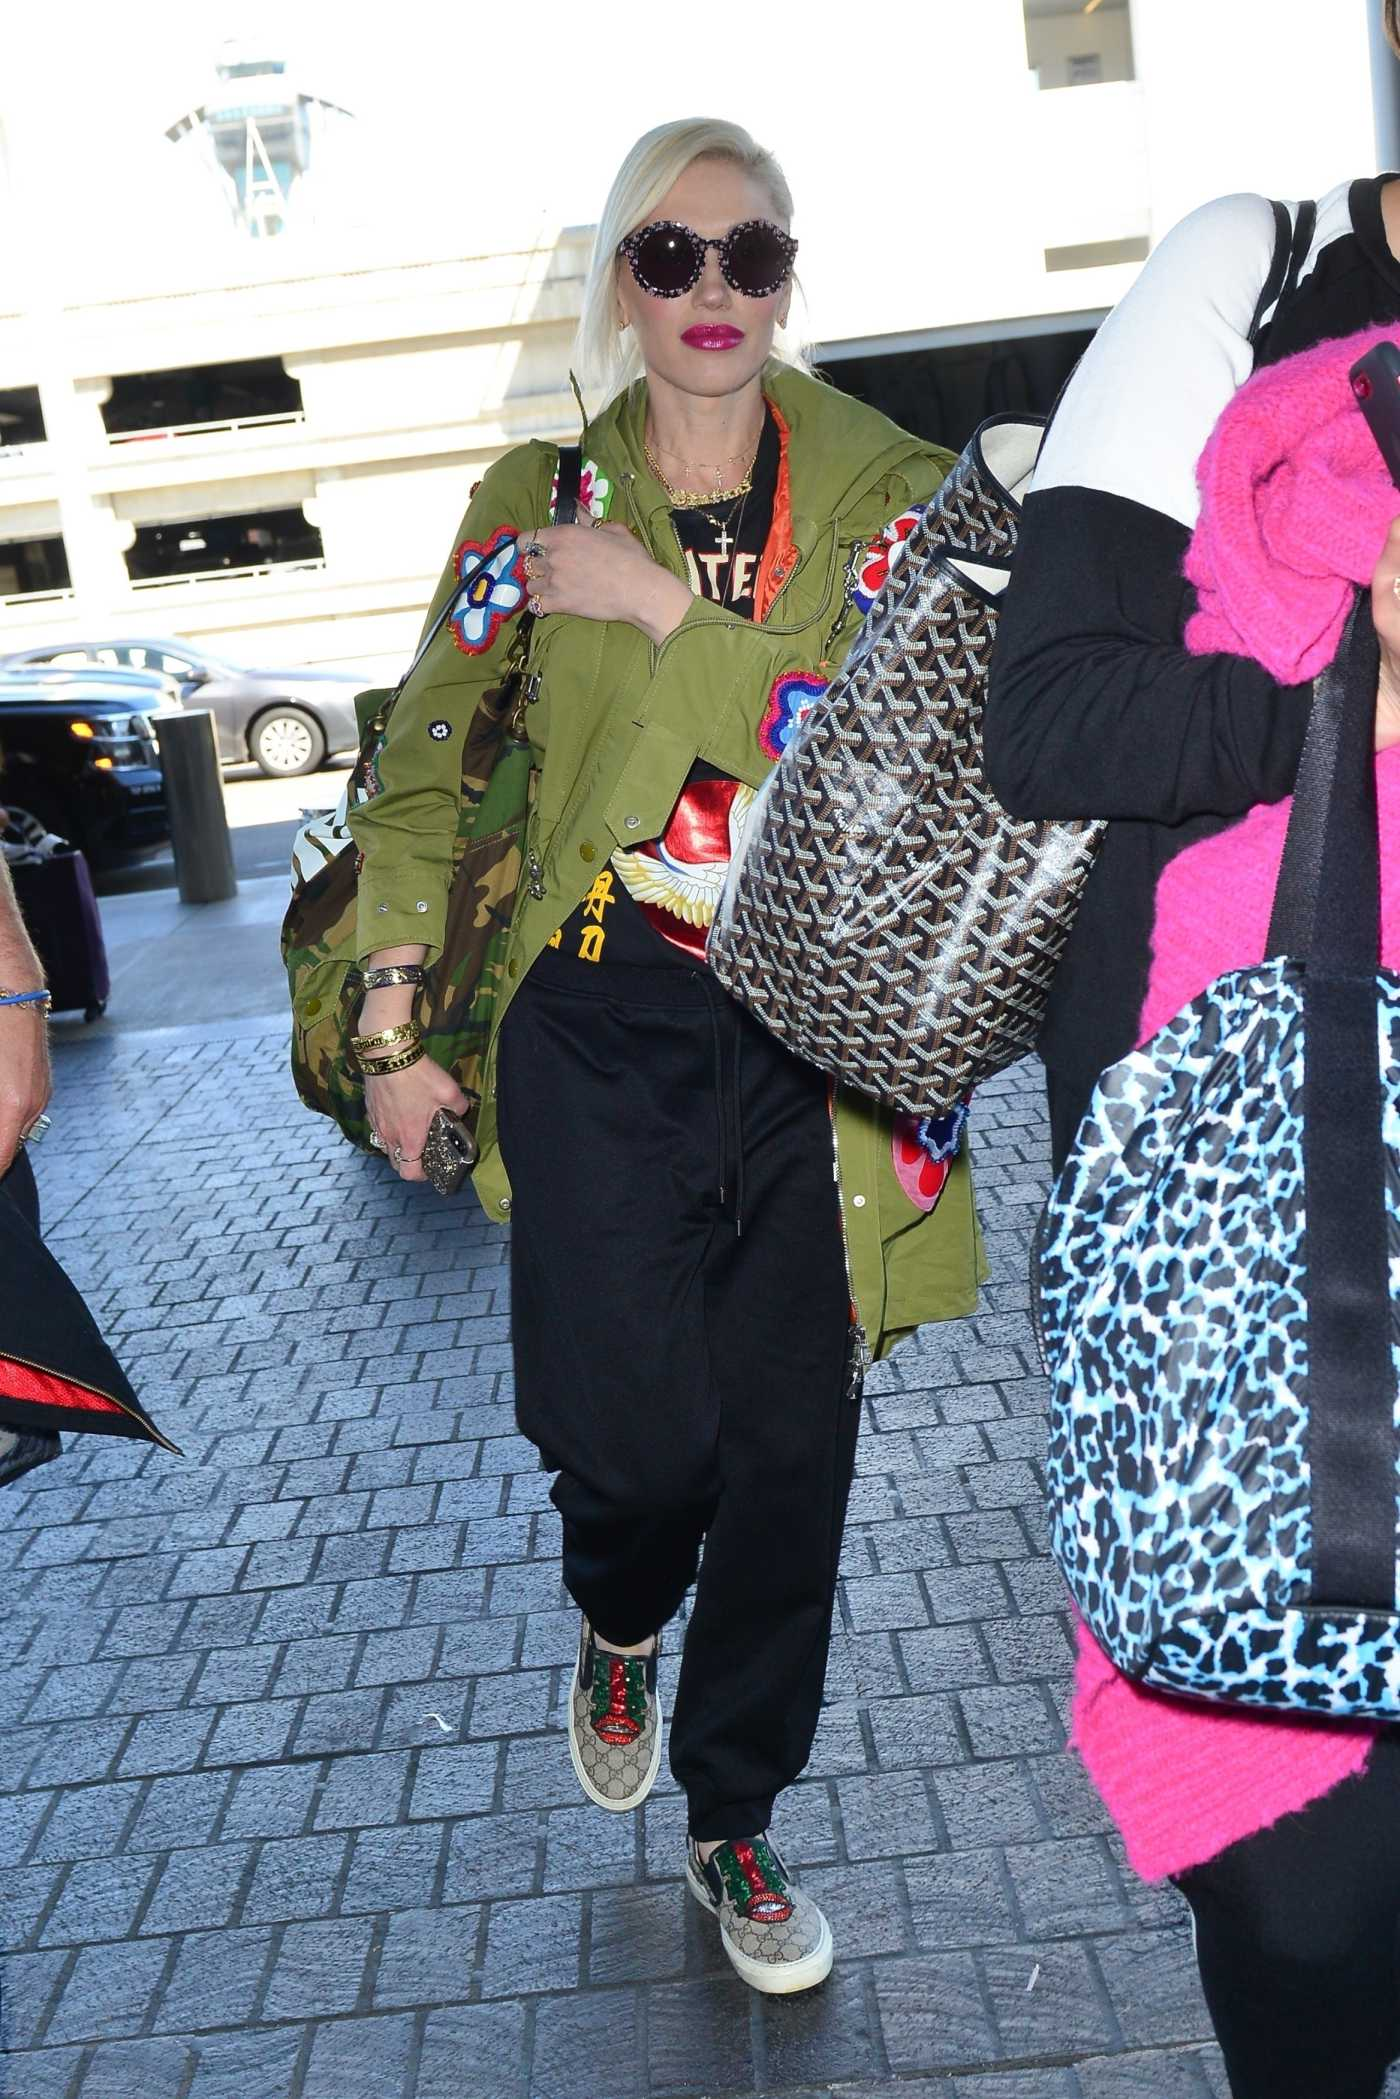 Gwen Stefani in a Black Track Pants Arrives at LAX Airport in Los Angeles 03/28/2019